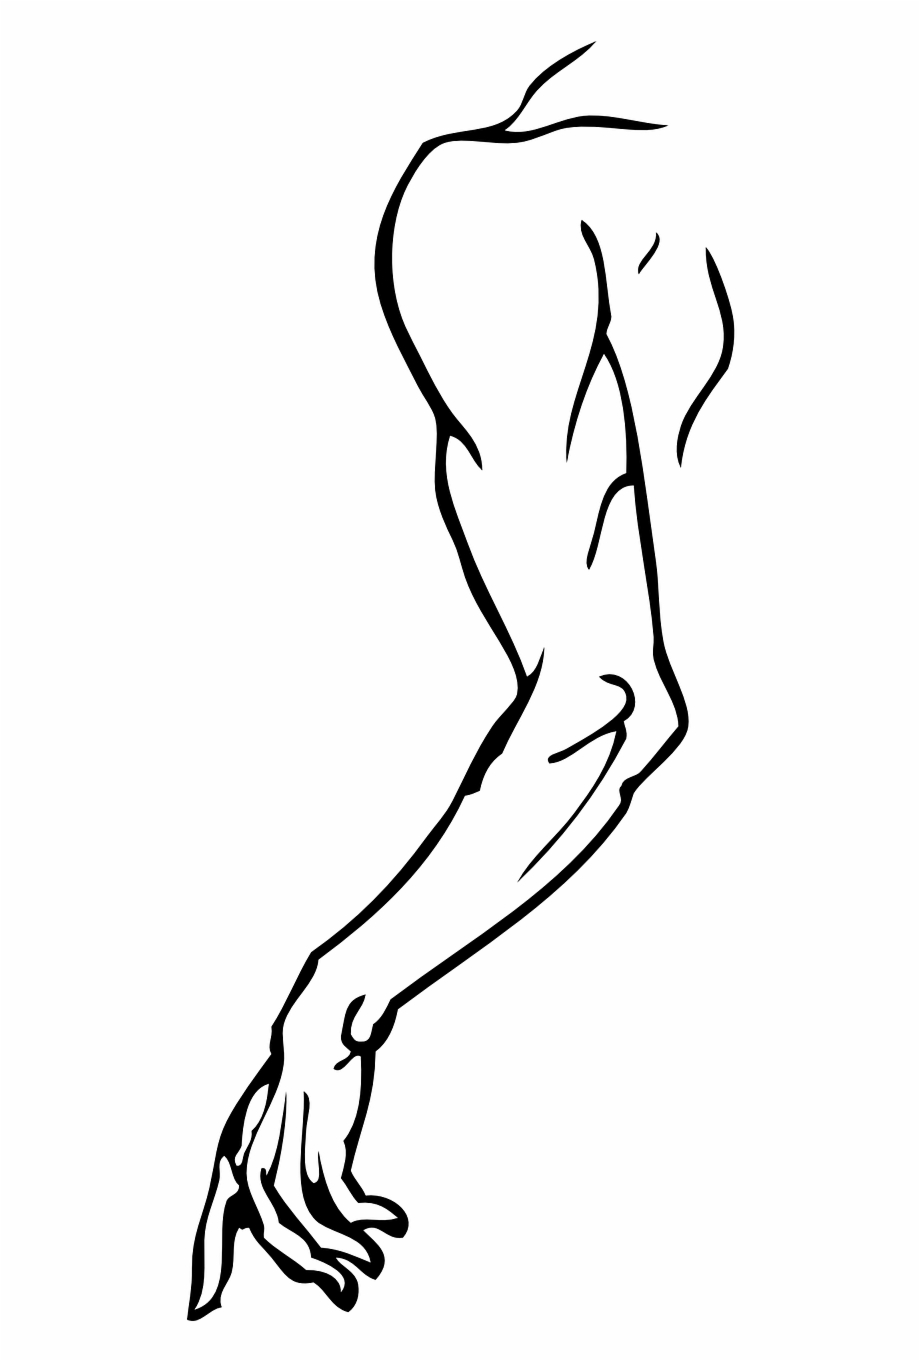 Arm left hand human. Elbow clipart body part